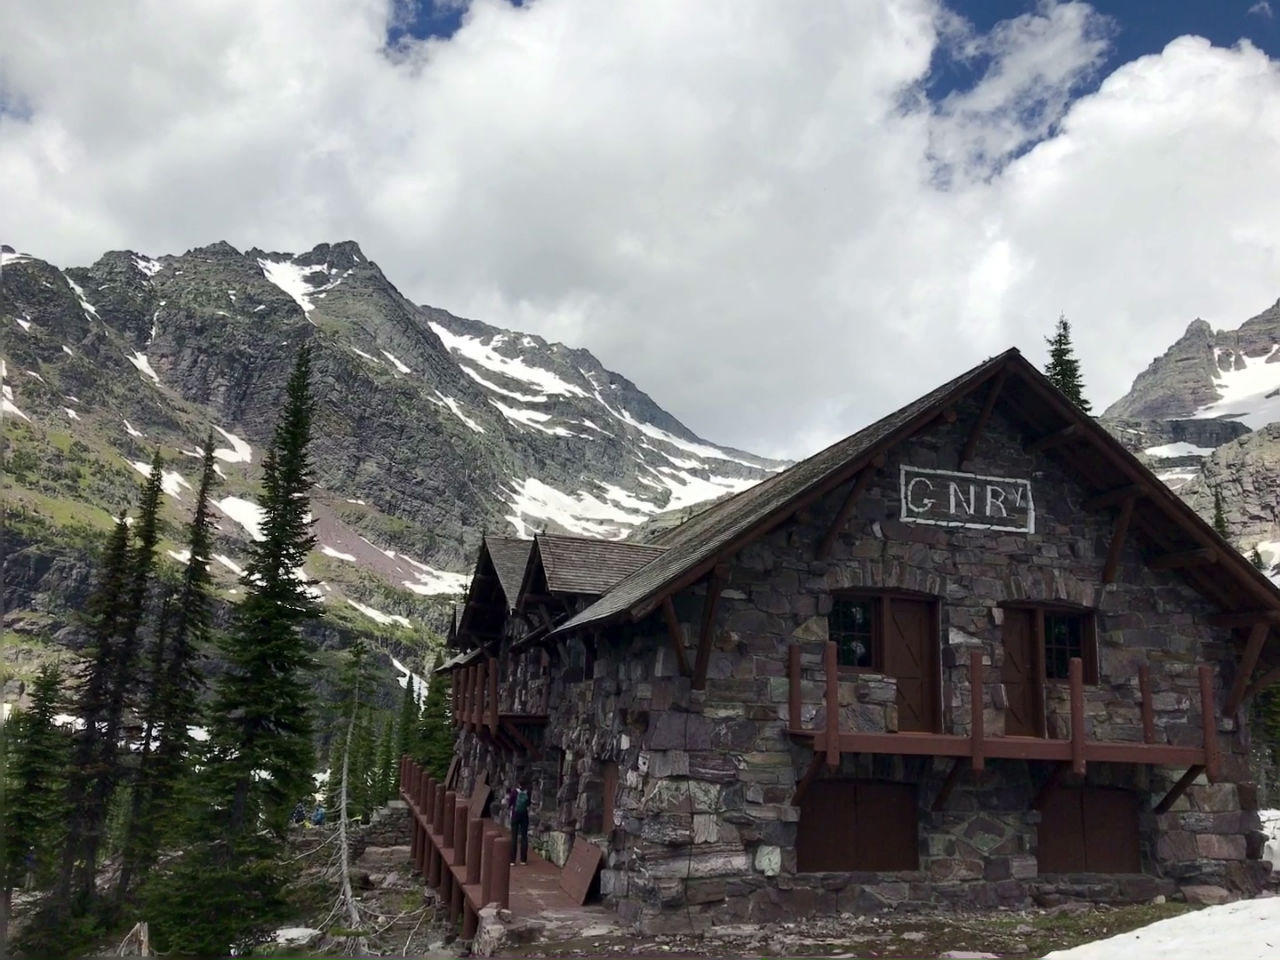 Sperry Chalet burns in Glacier National Park wildfire